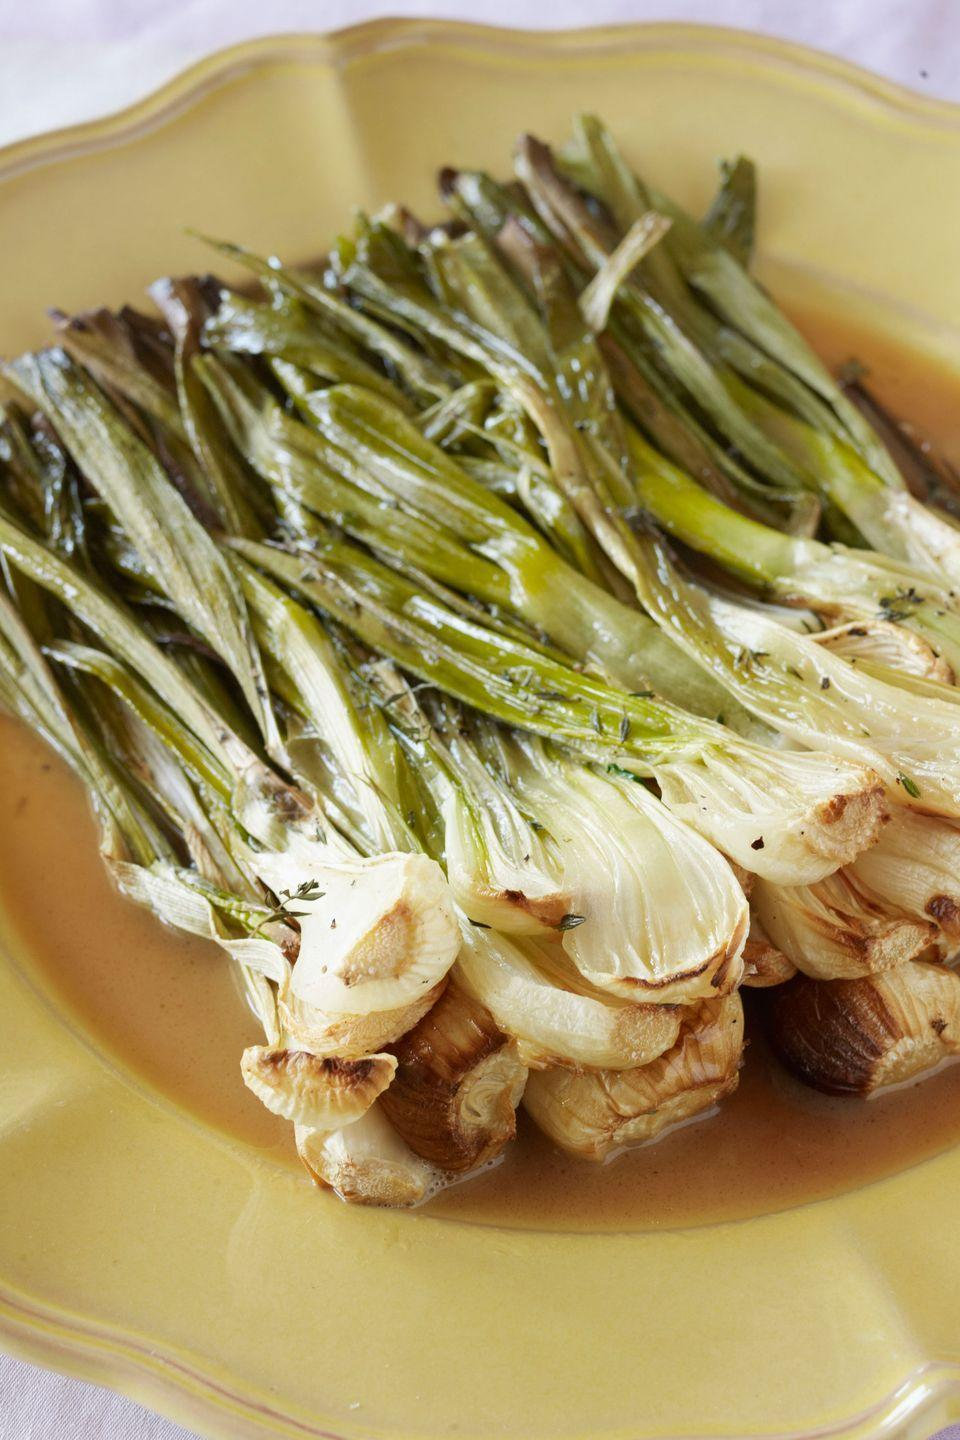 "This fuss-free recipe showcases spring's fresh produce. Baby spring onions are roasted with a little butter and basic seasonings until they become sweet and caramelized. <a href=""https://www.countryliving.com/food-drinks/recipes/a3599/roasted-spring-onions-recipe-clx0411/"" rel=""nofollow noopener"" target=""_blank"" data-ylk=""slk:Get the recipe."" class=""link rapid-noclick-resp""><strong>Get the recipe.</strong></a>"